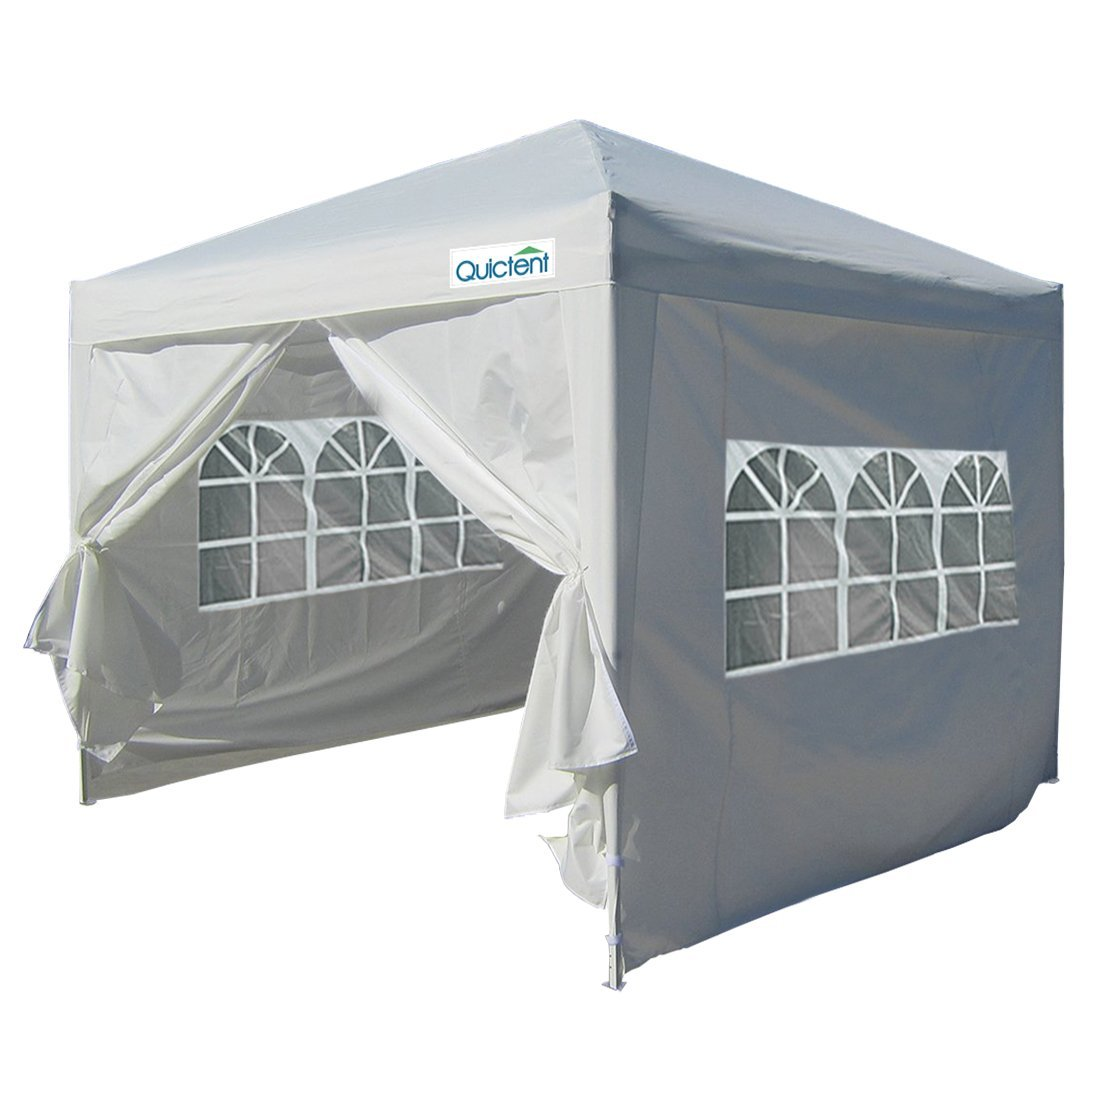 Quictent Silvox Waterproof 10x10u0027 EZ Pop Up Canopy Commercial Gazebo Party Tent White Portable Style  sc 1 st  Walmart & Quictent Silvox Waterproof 10x10u0027 EZ Pop Up Canopy Commercial ...